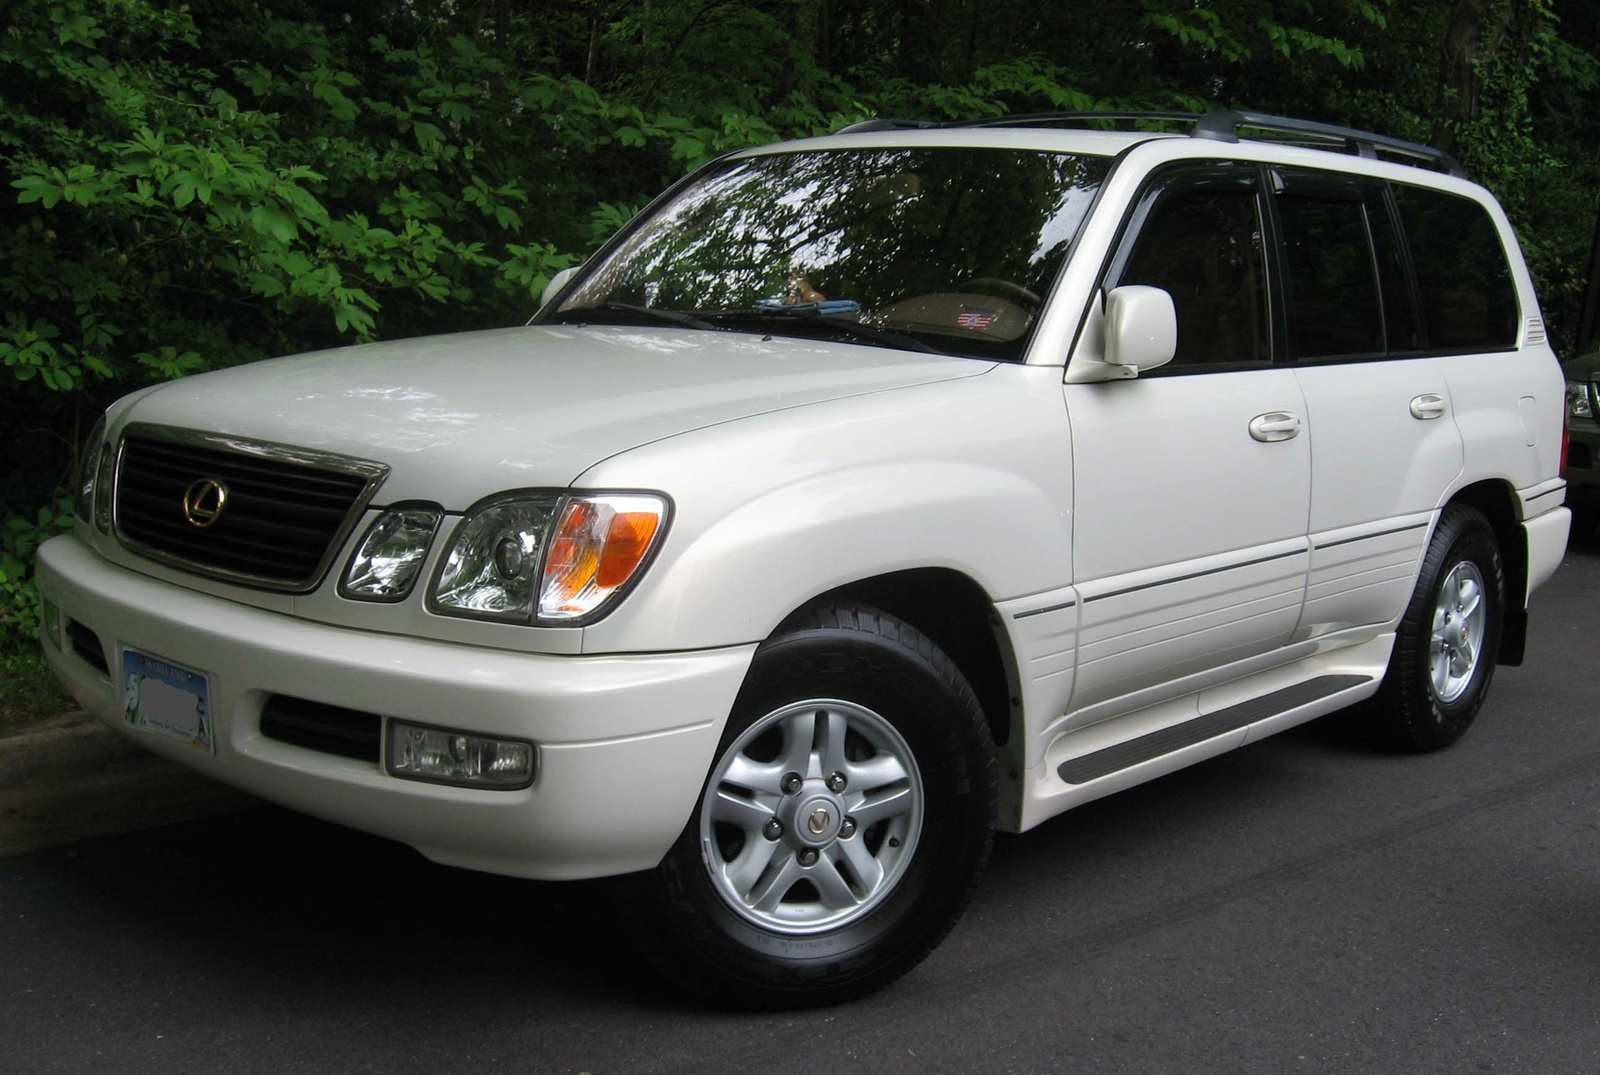 Picture of 2005 Lexus LX 470